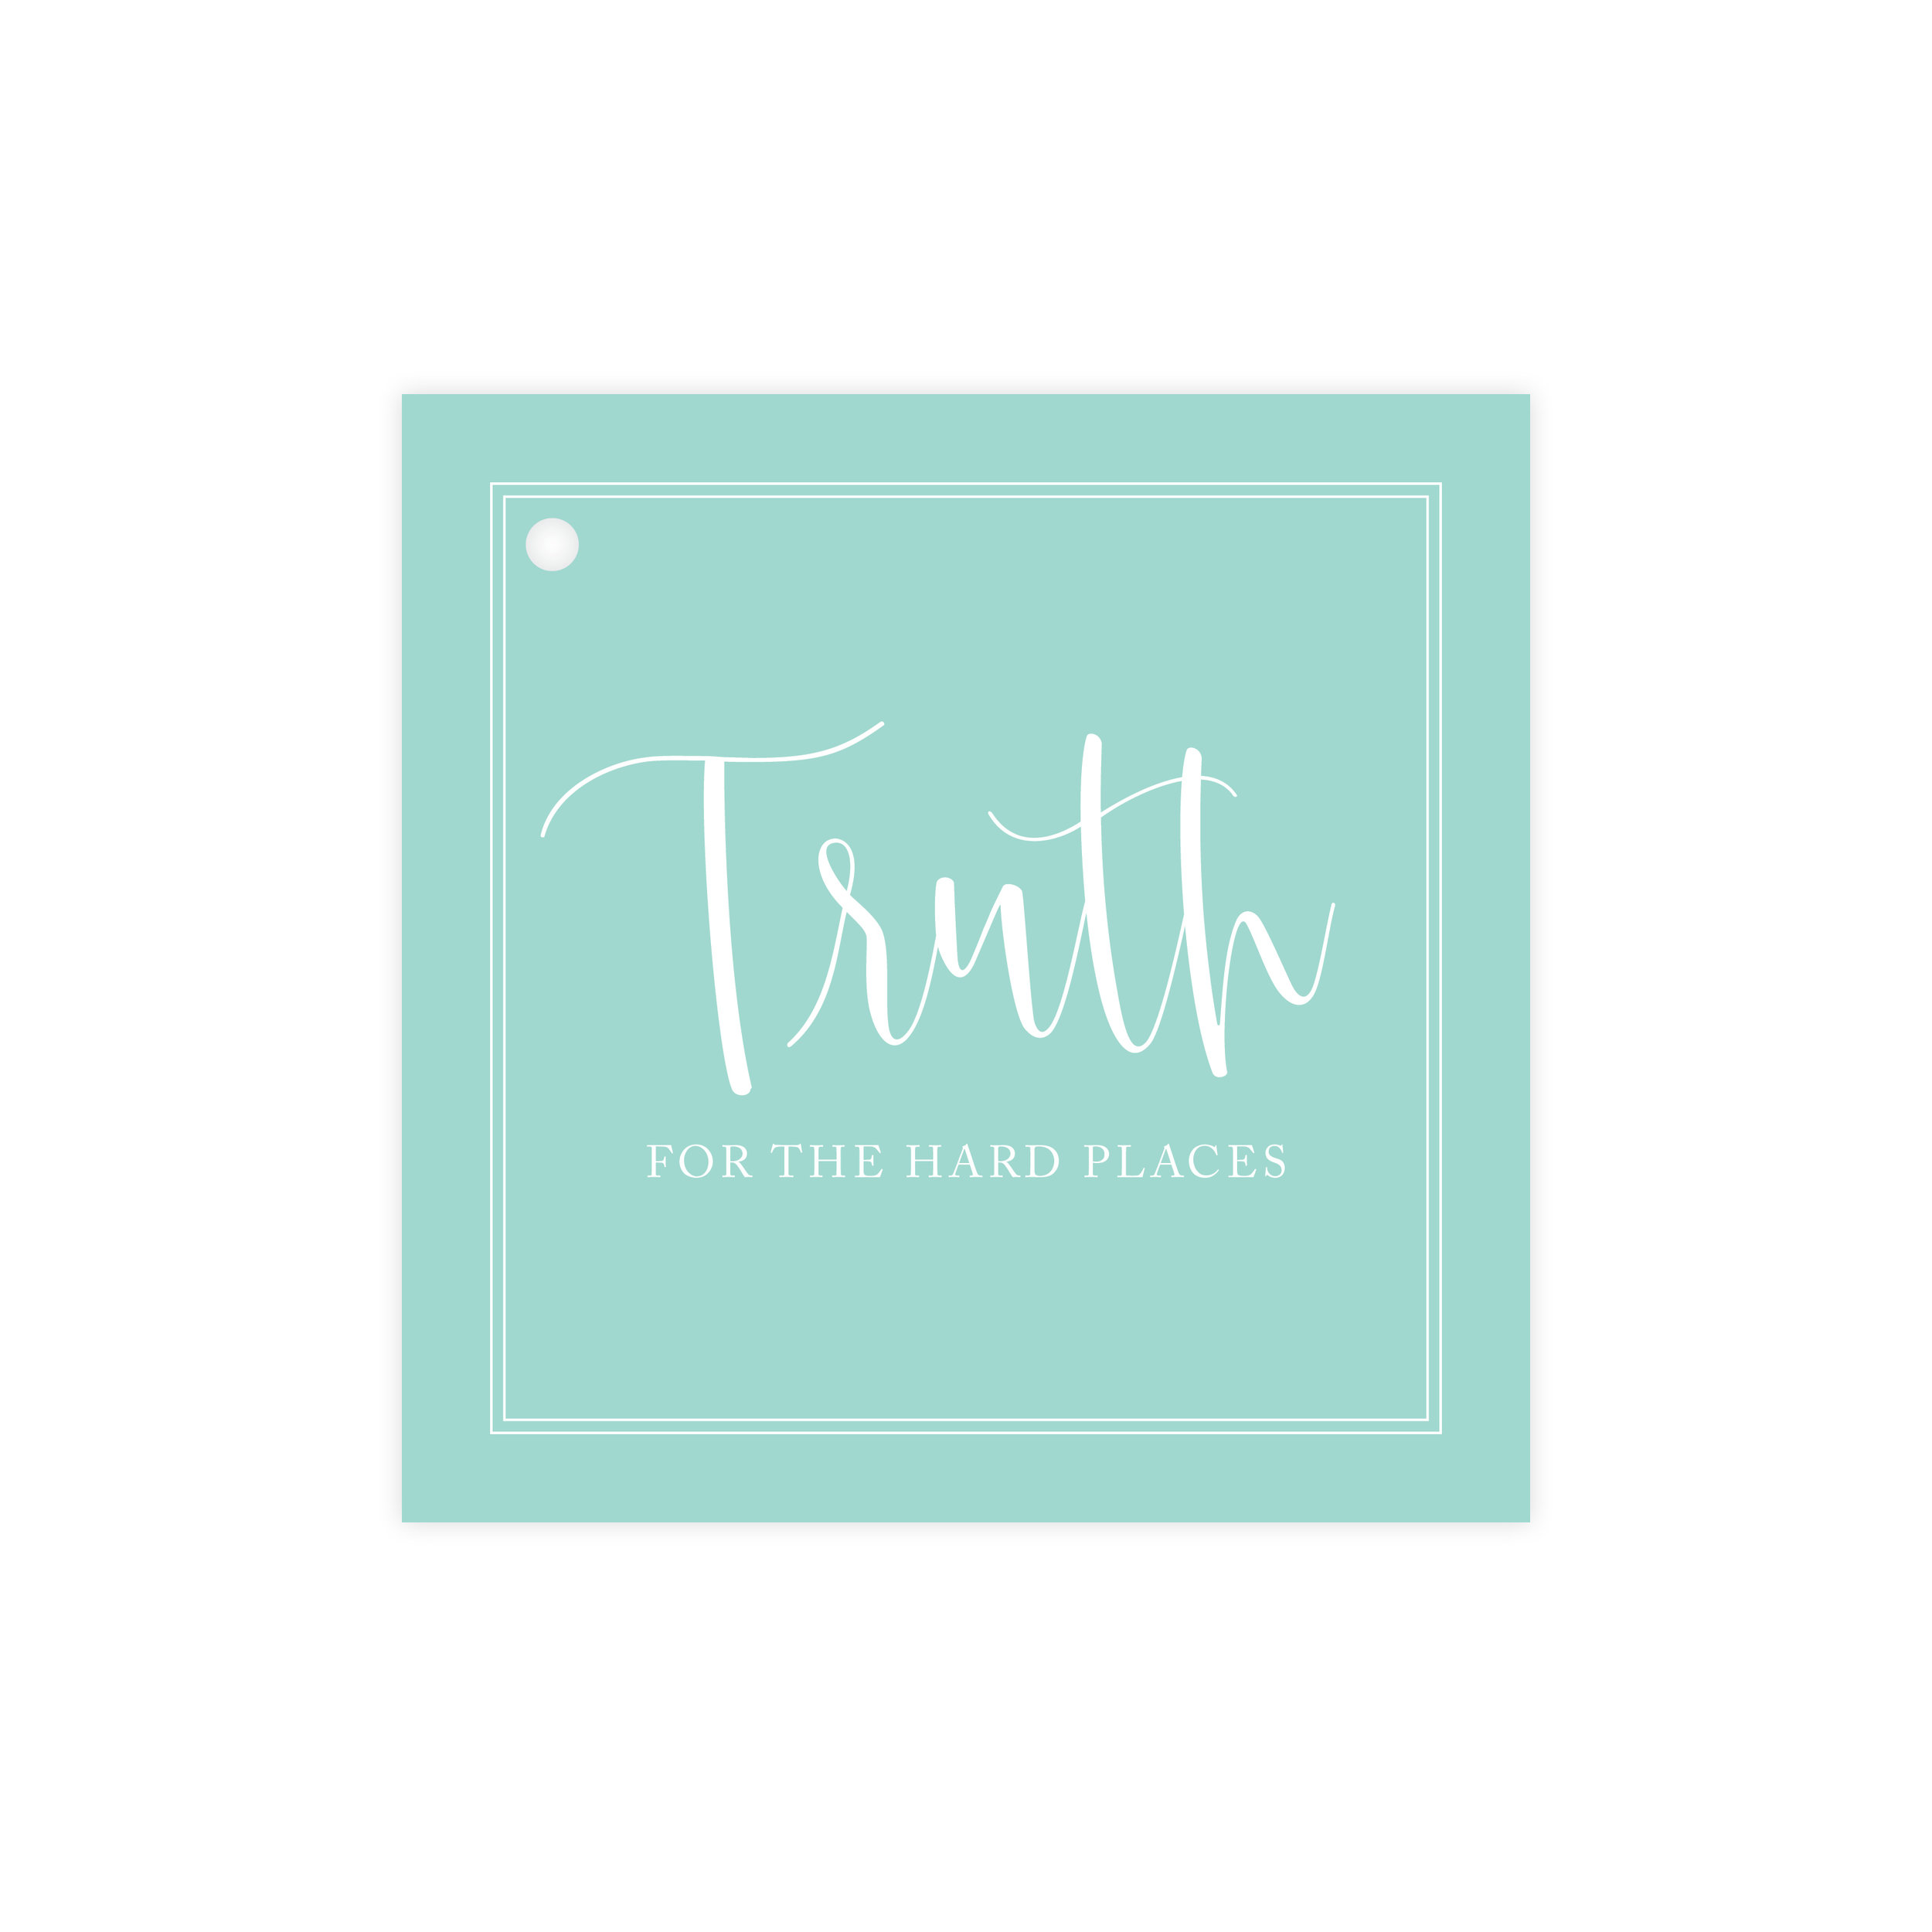 TRUTH: For the Hard Places - $24.00